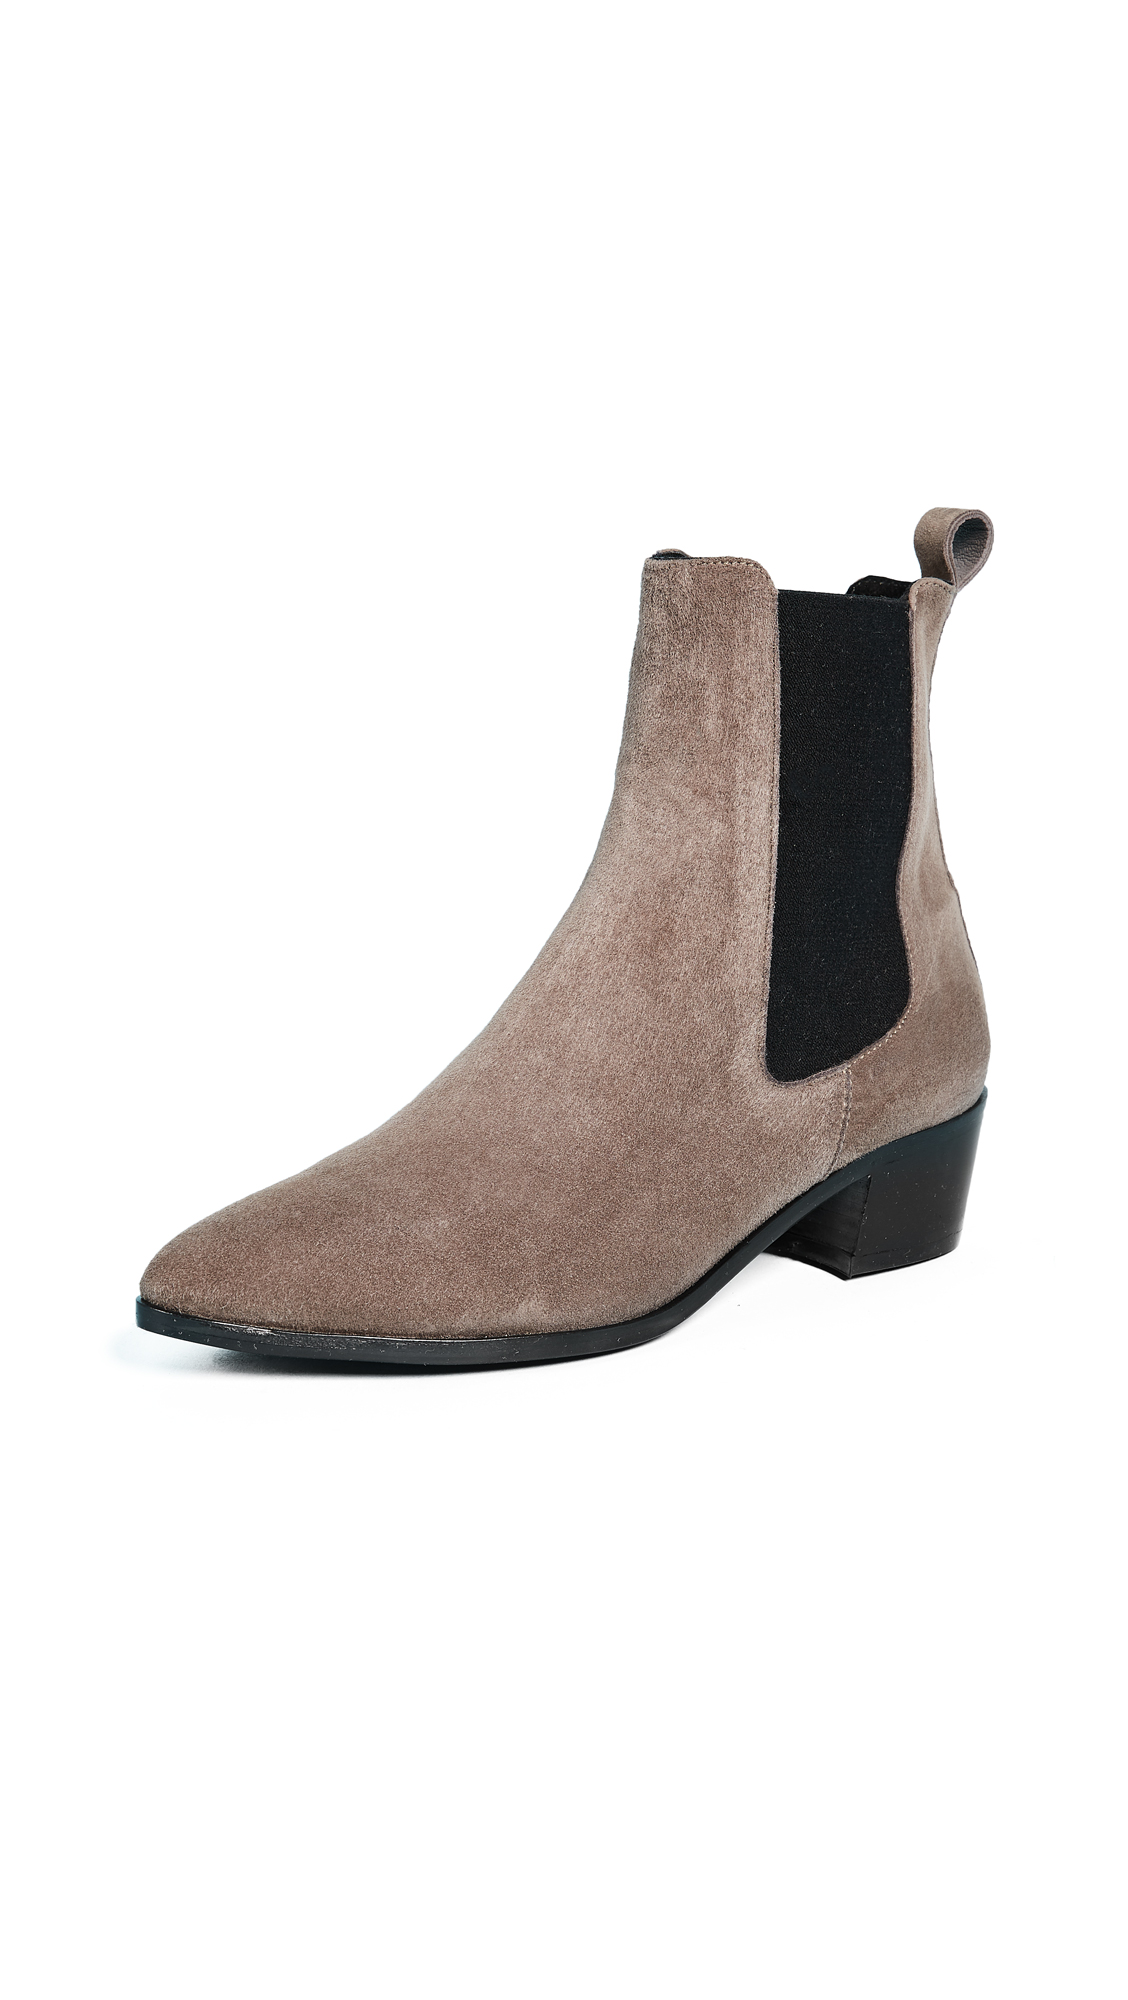 The Archive Mercer Heeled Chelsea Boots - Space Grey